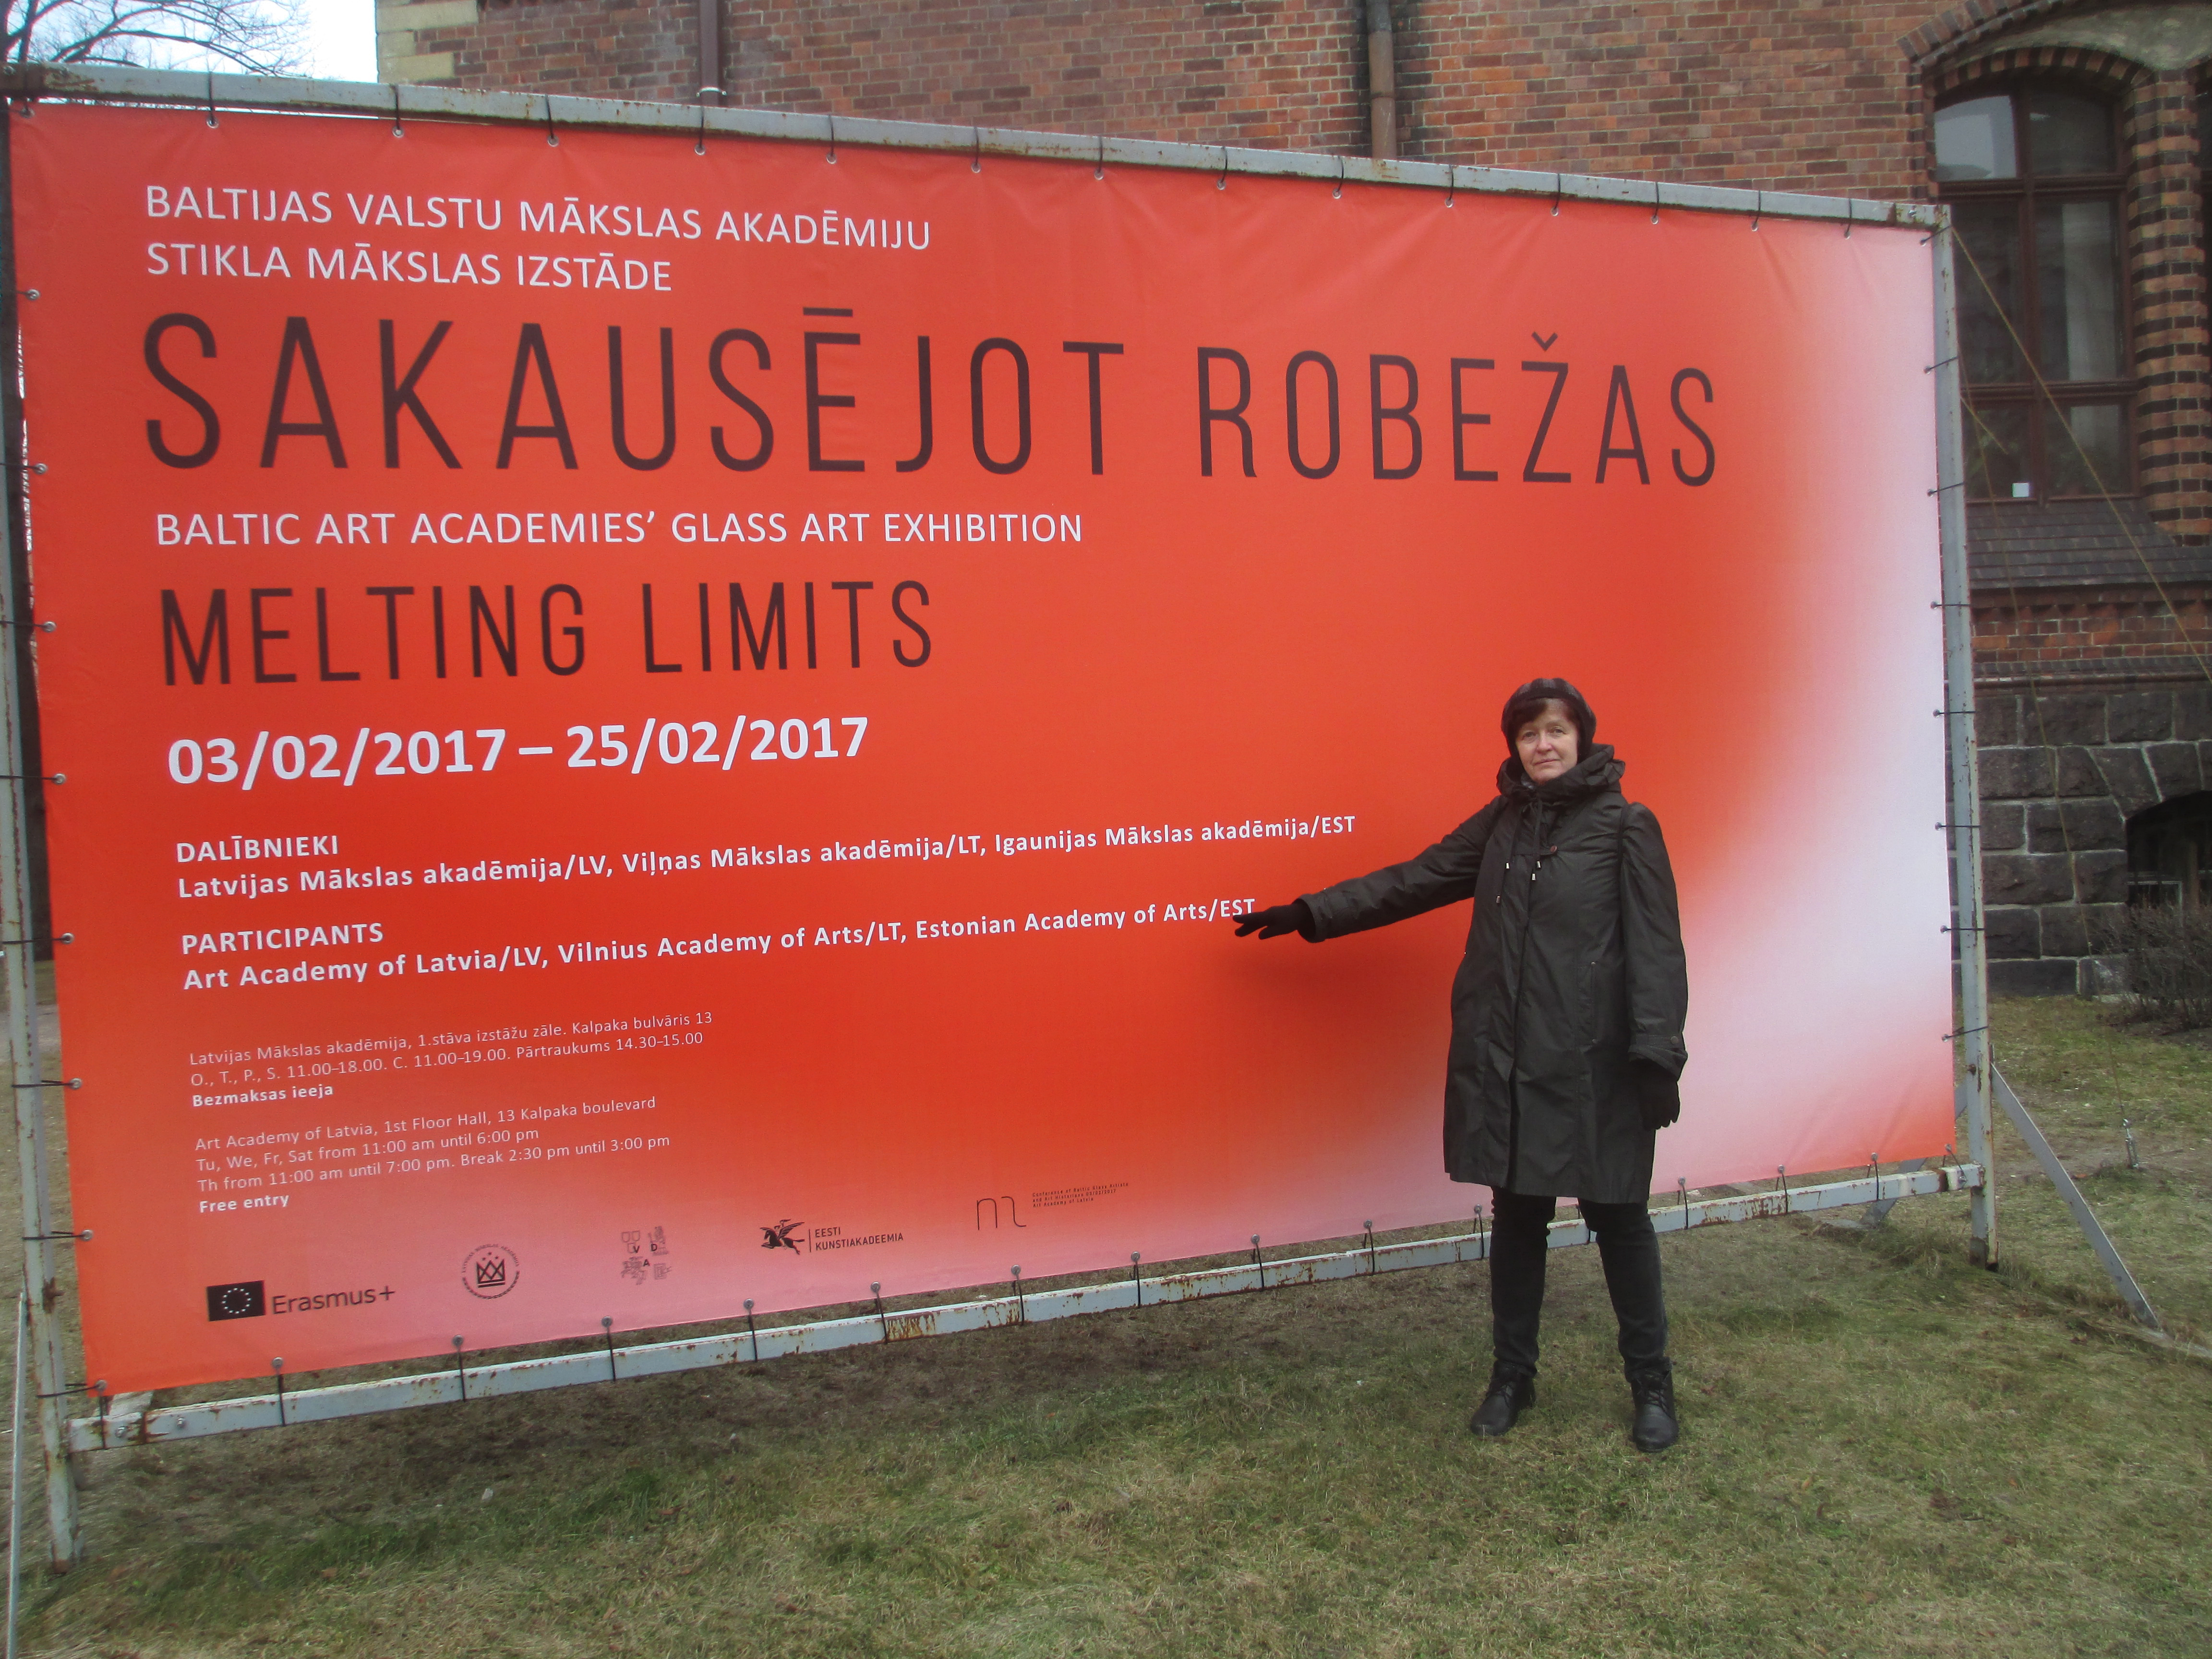 Professor Mare Saare from the Department of Glass Art with the exhibition banner